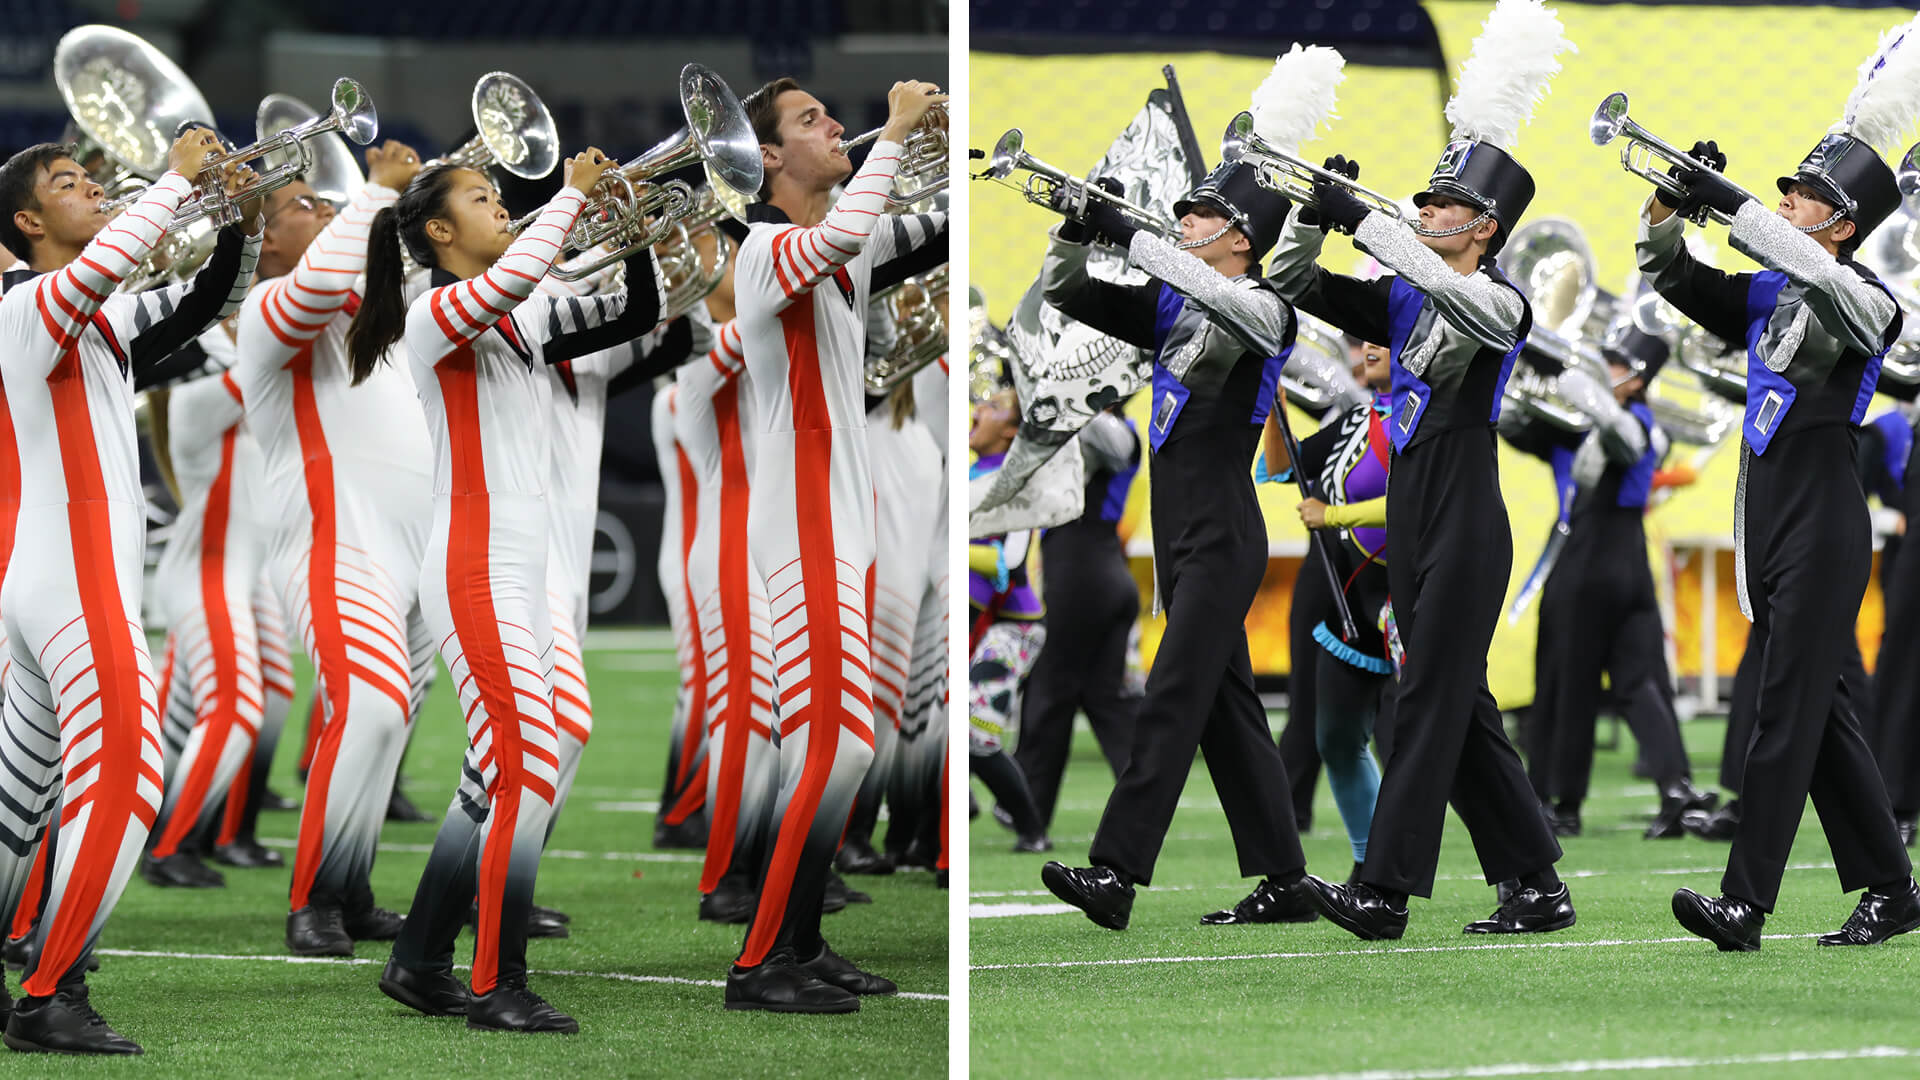 Blue Devils B, Vanguard Cadets plan regional tours for 2019